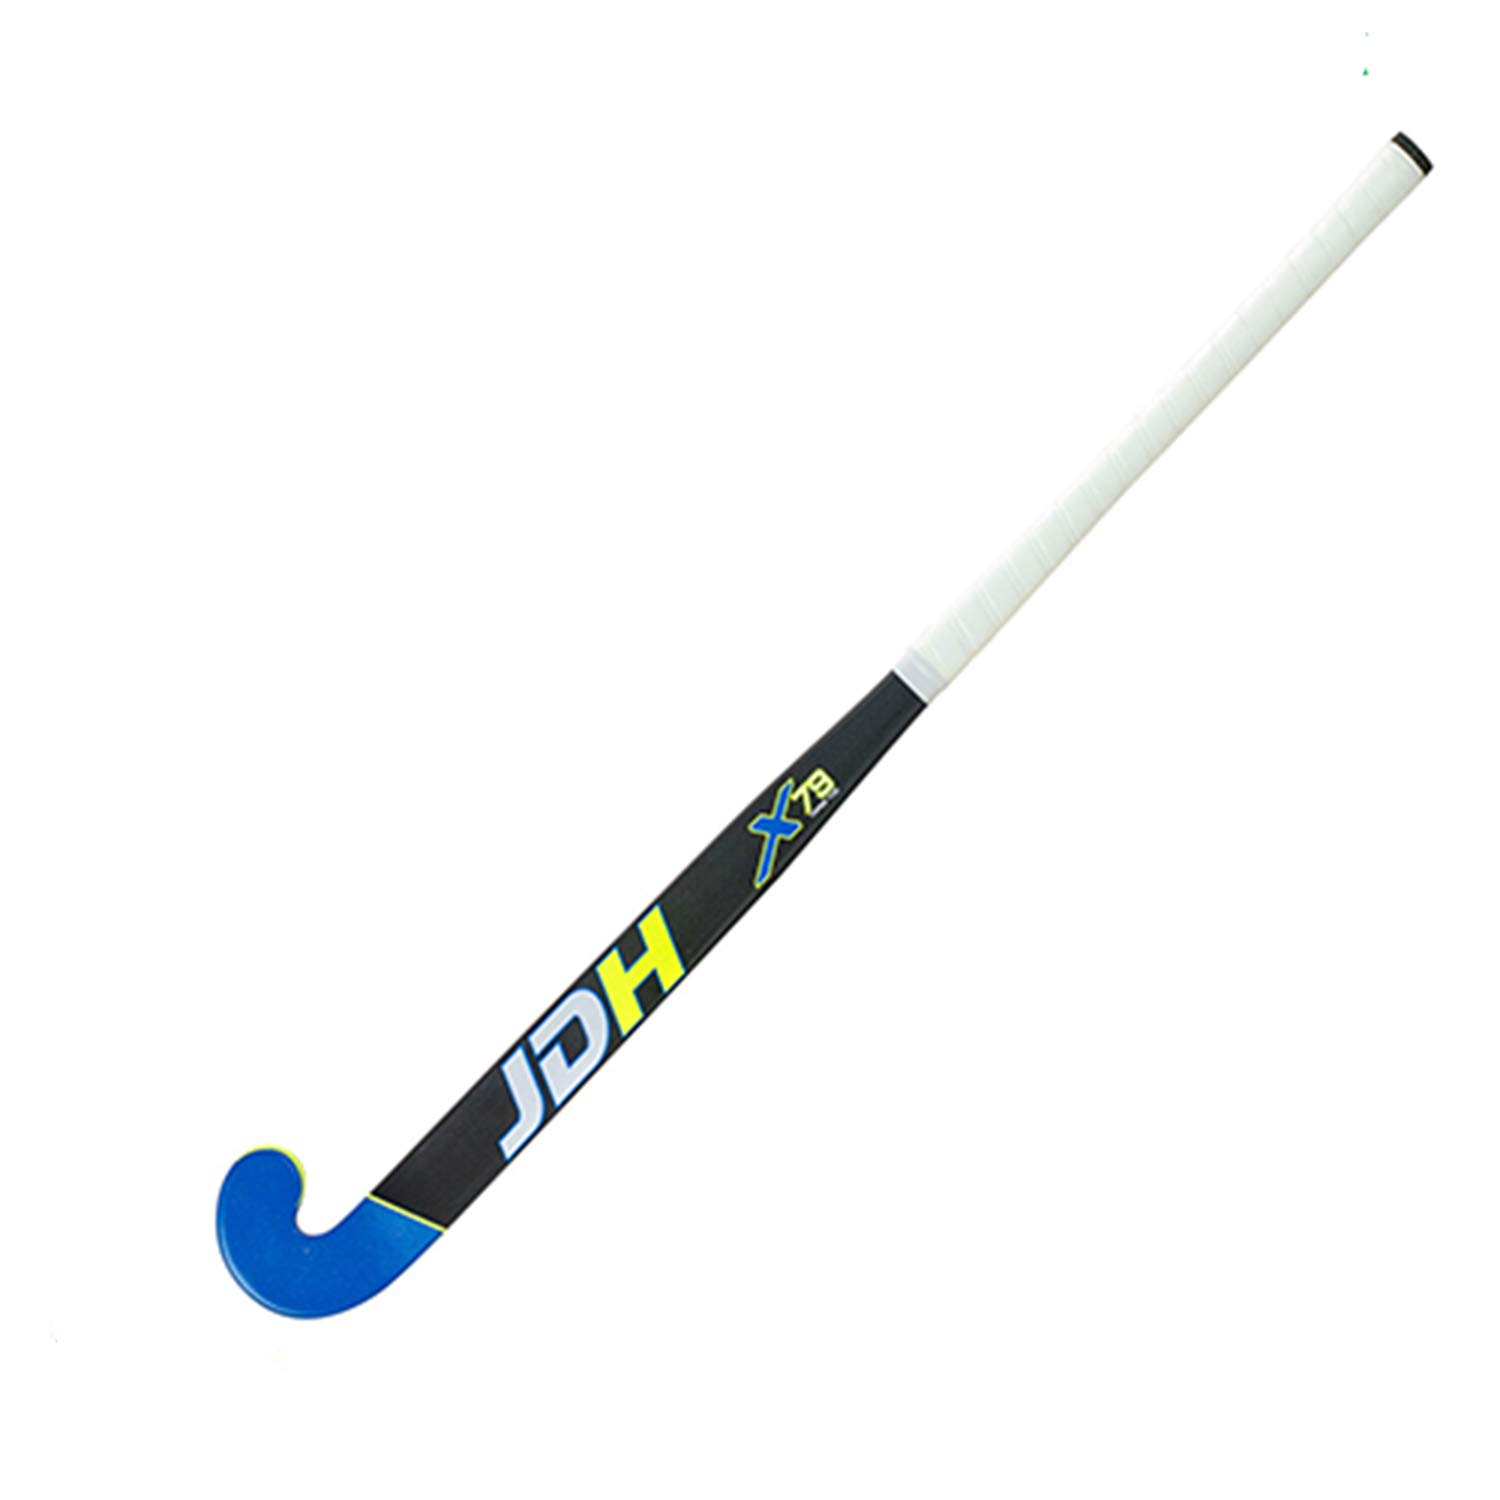 JDH X79 TT Low Bow Composite Field Hockey Stick Free Grip /& Carrying Bag